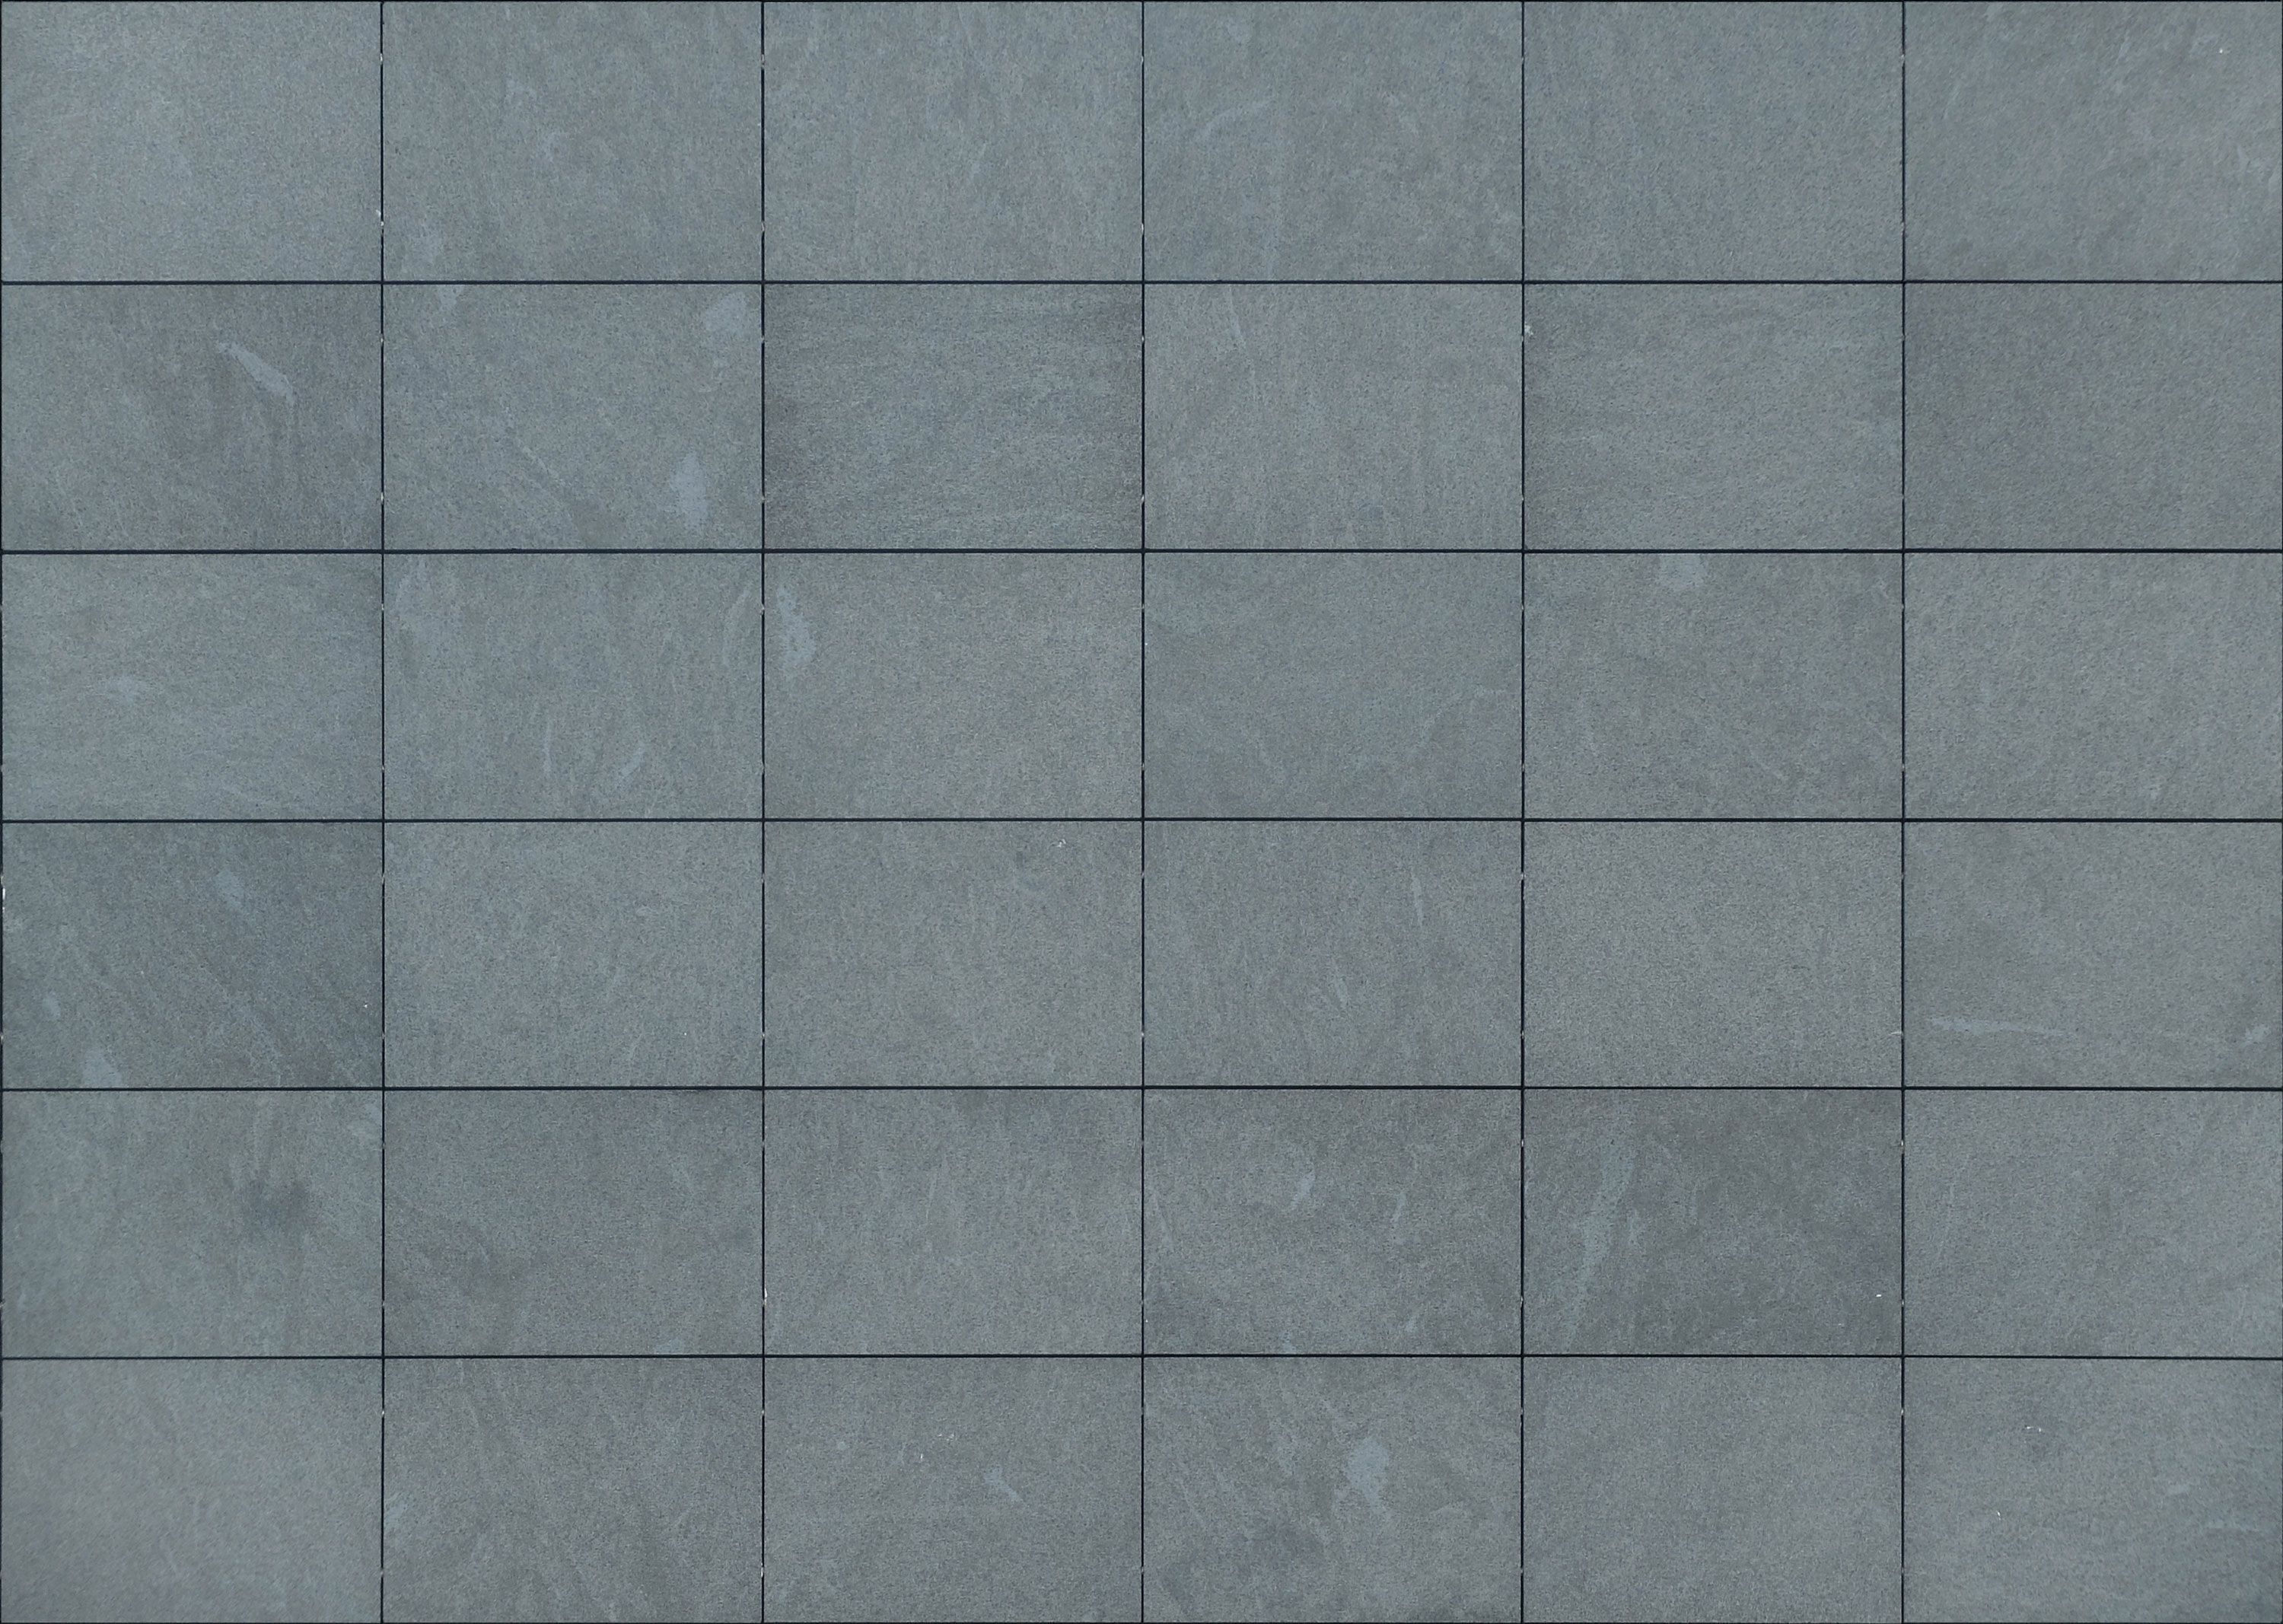 Granite Stone Cladding Seamless Texture Material Opticas